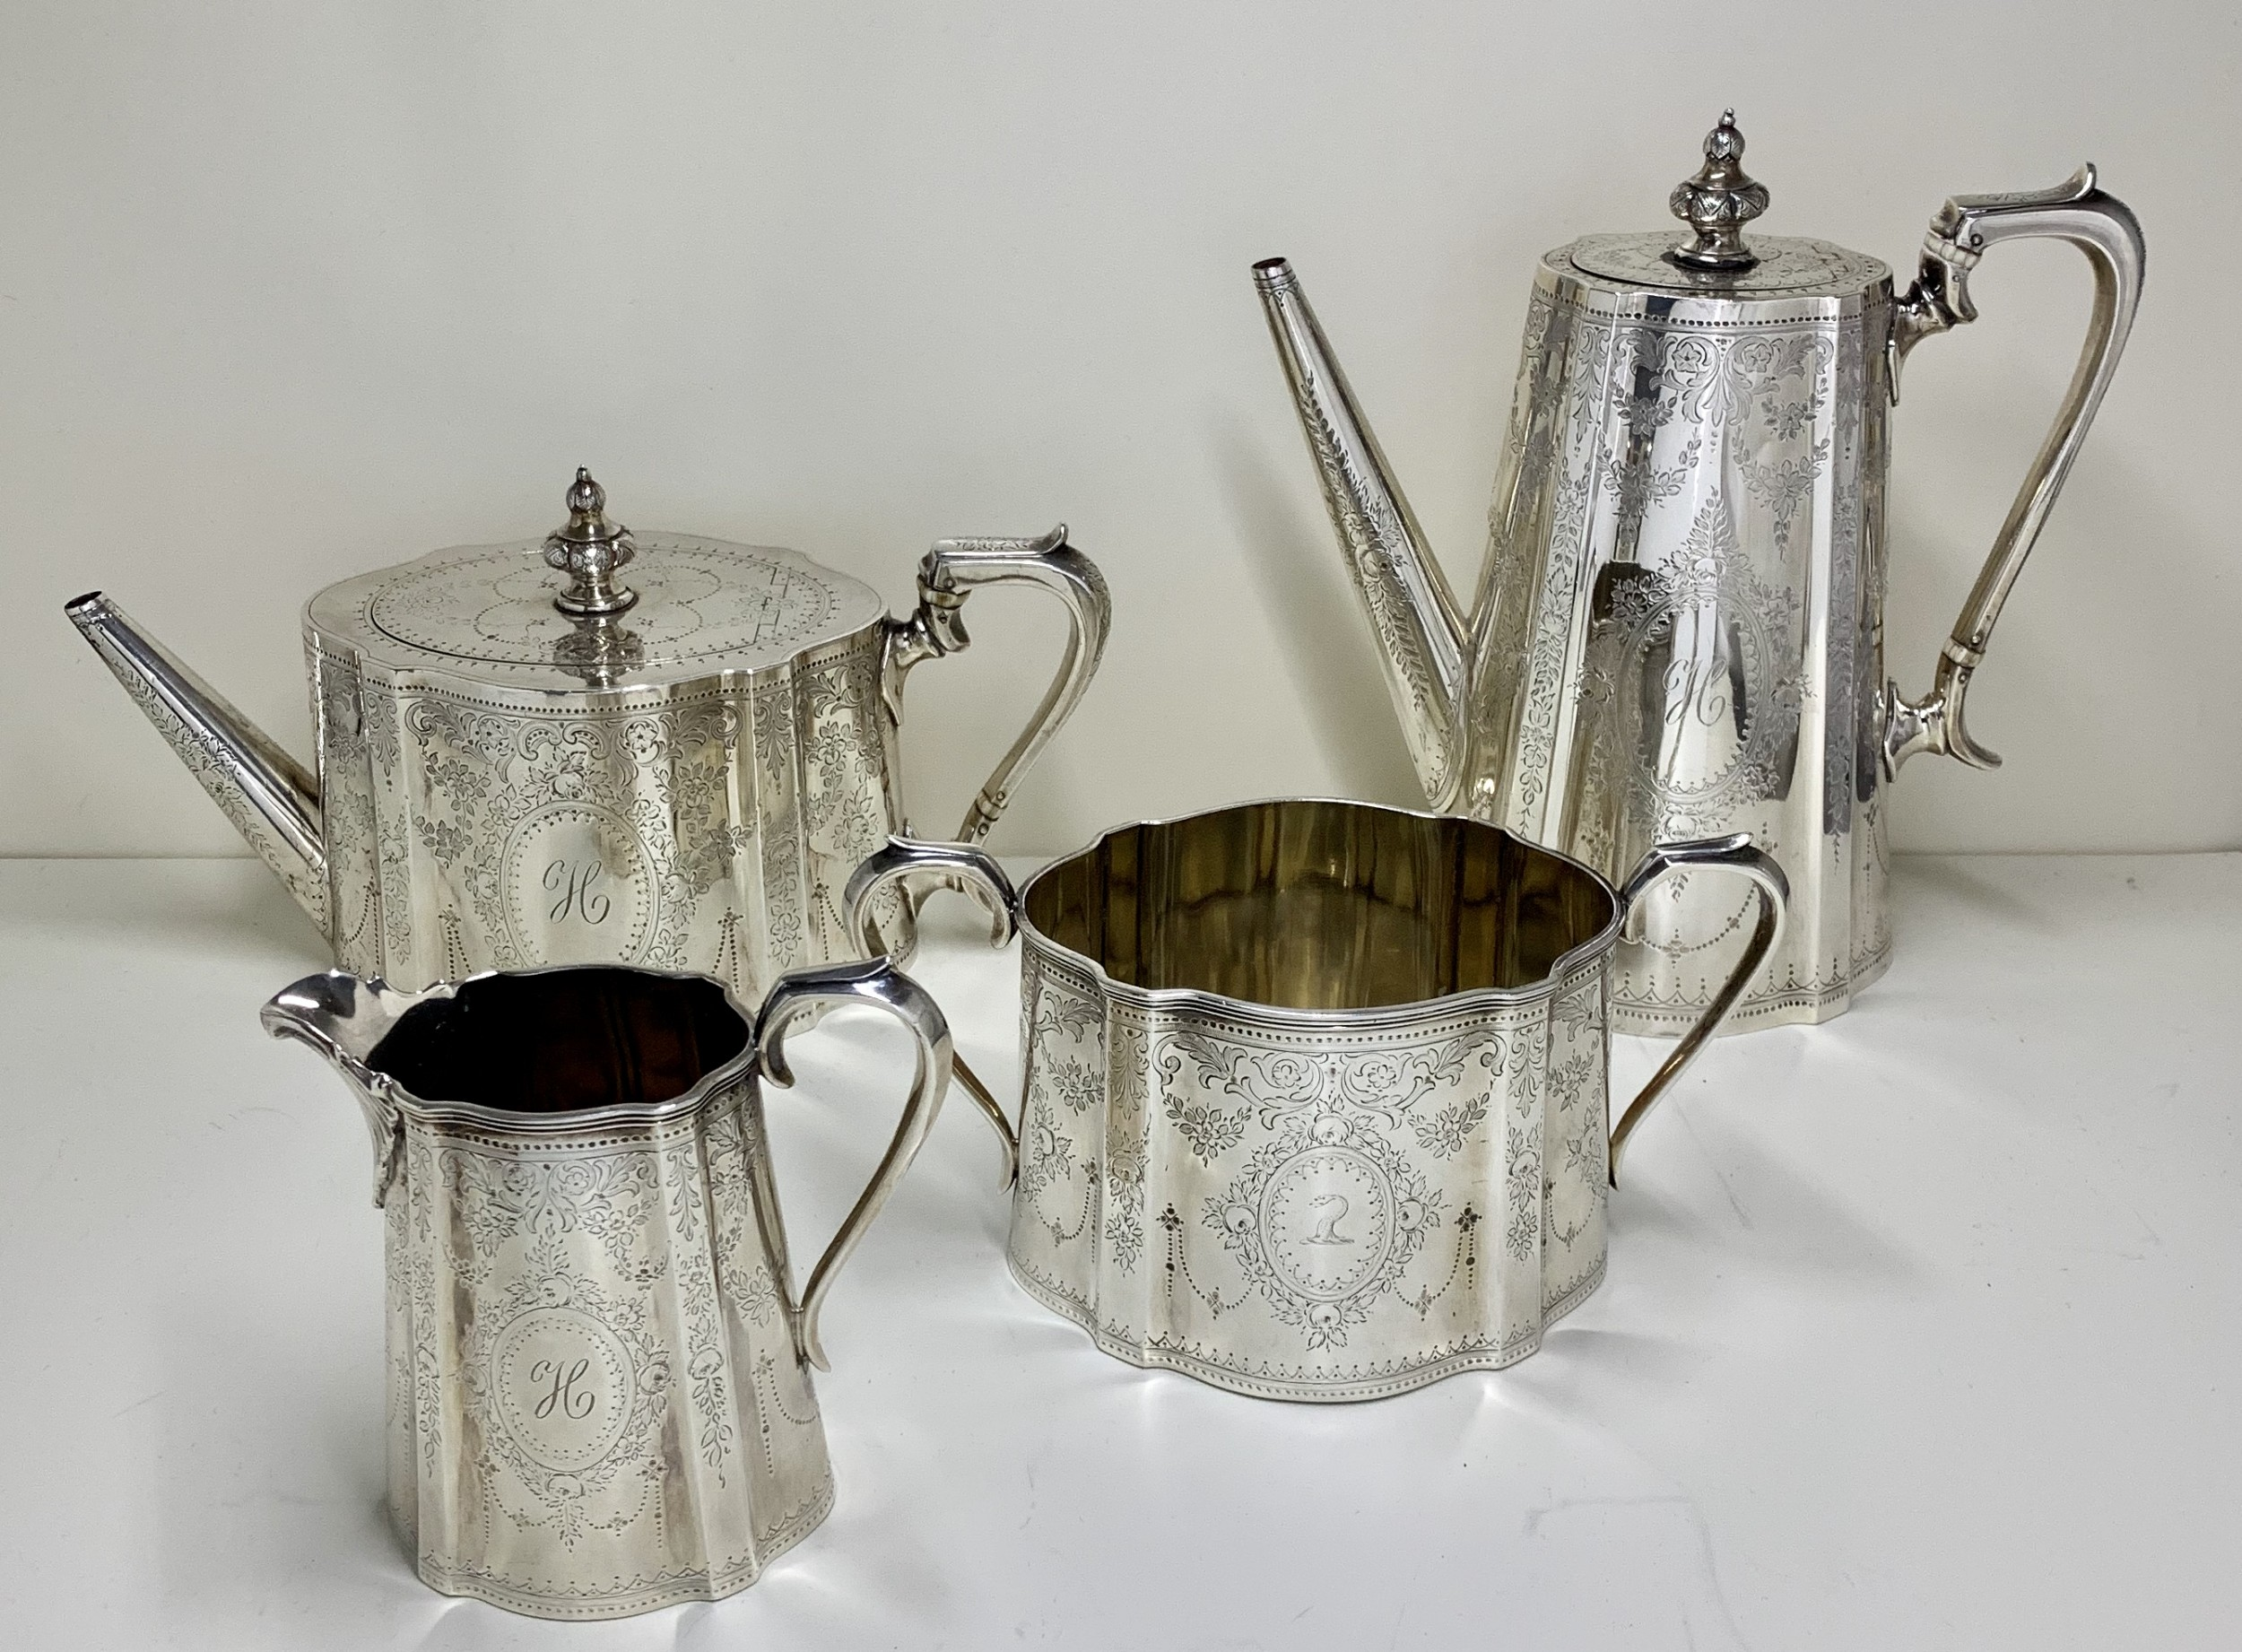 1873 a highly engraved victorian sterling silver tea coffee service